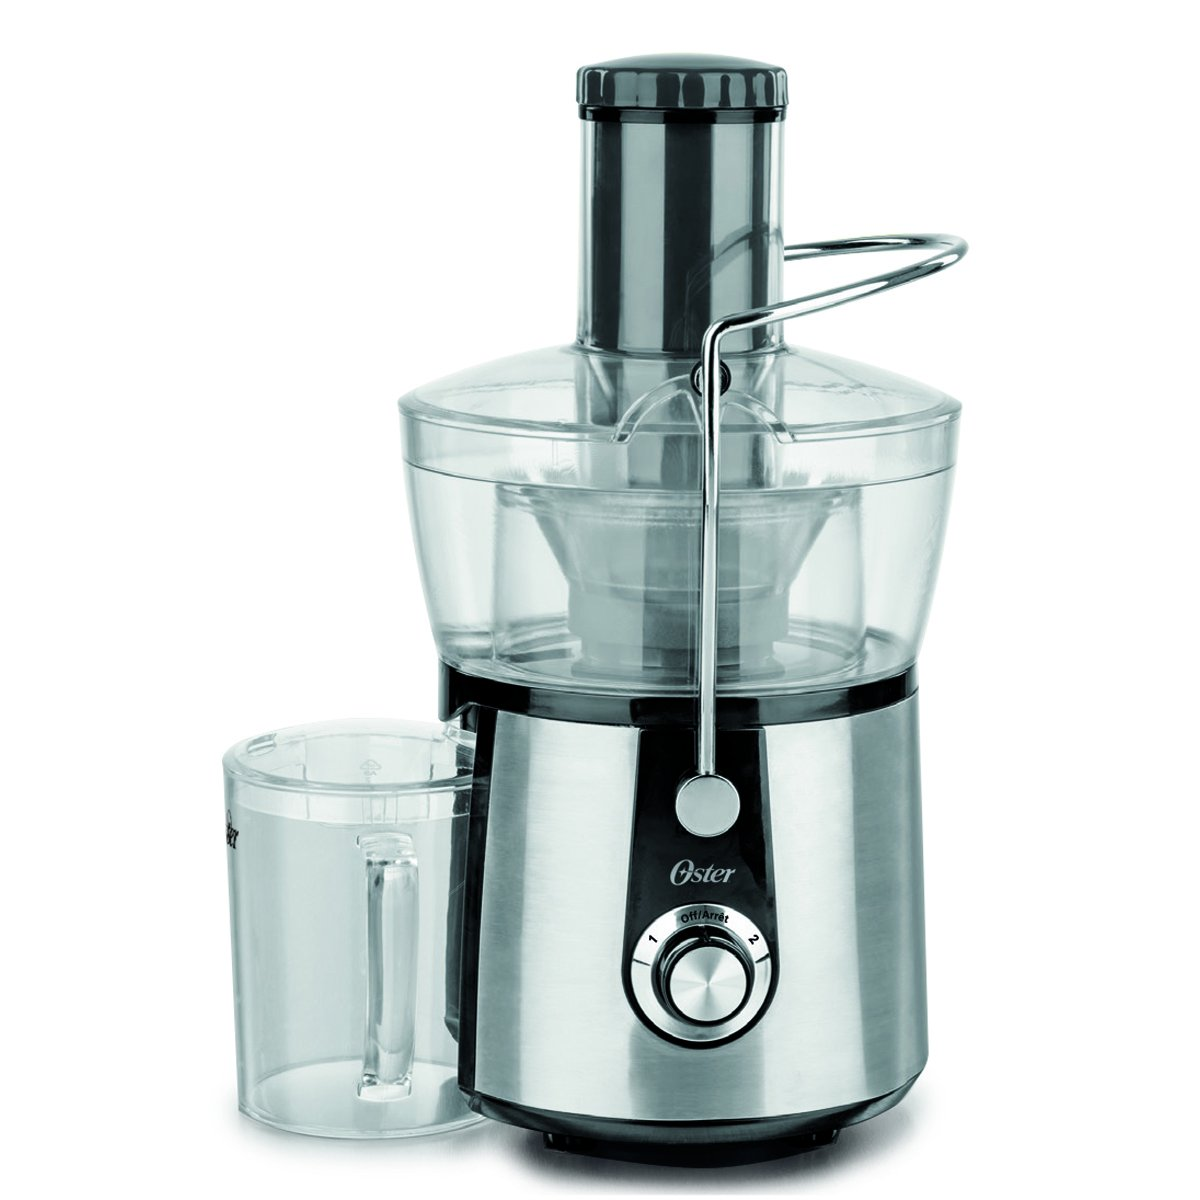 Oster FPSTJE416-033 Stainless Steel Juice Extractor, Stainless Steel